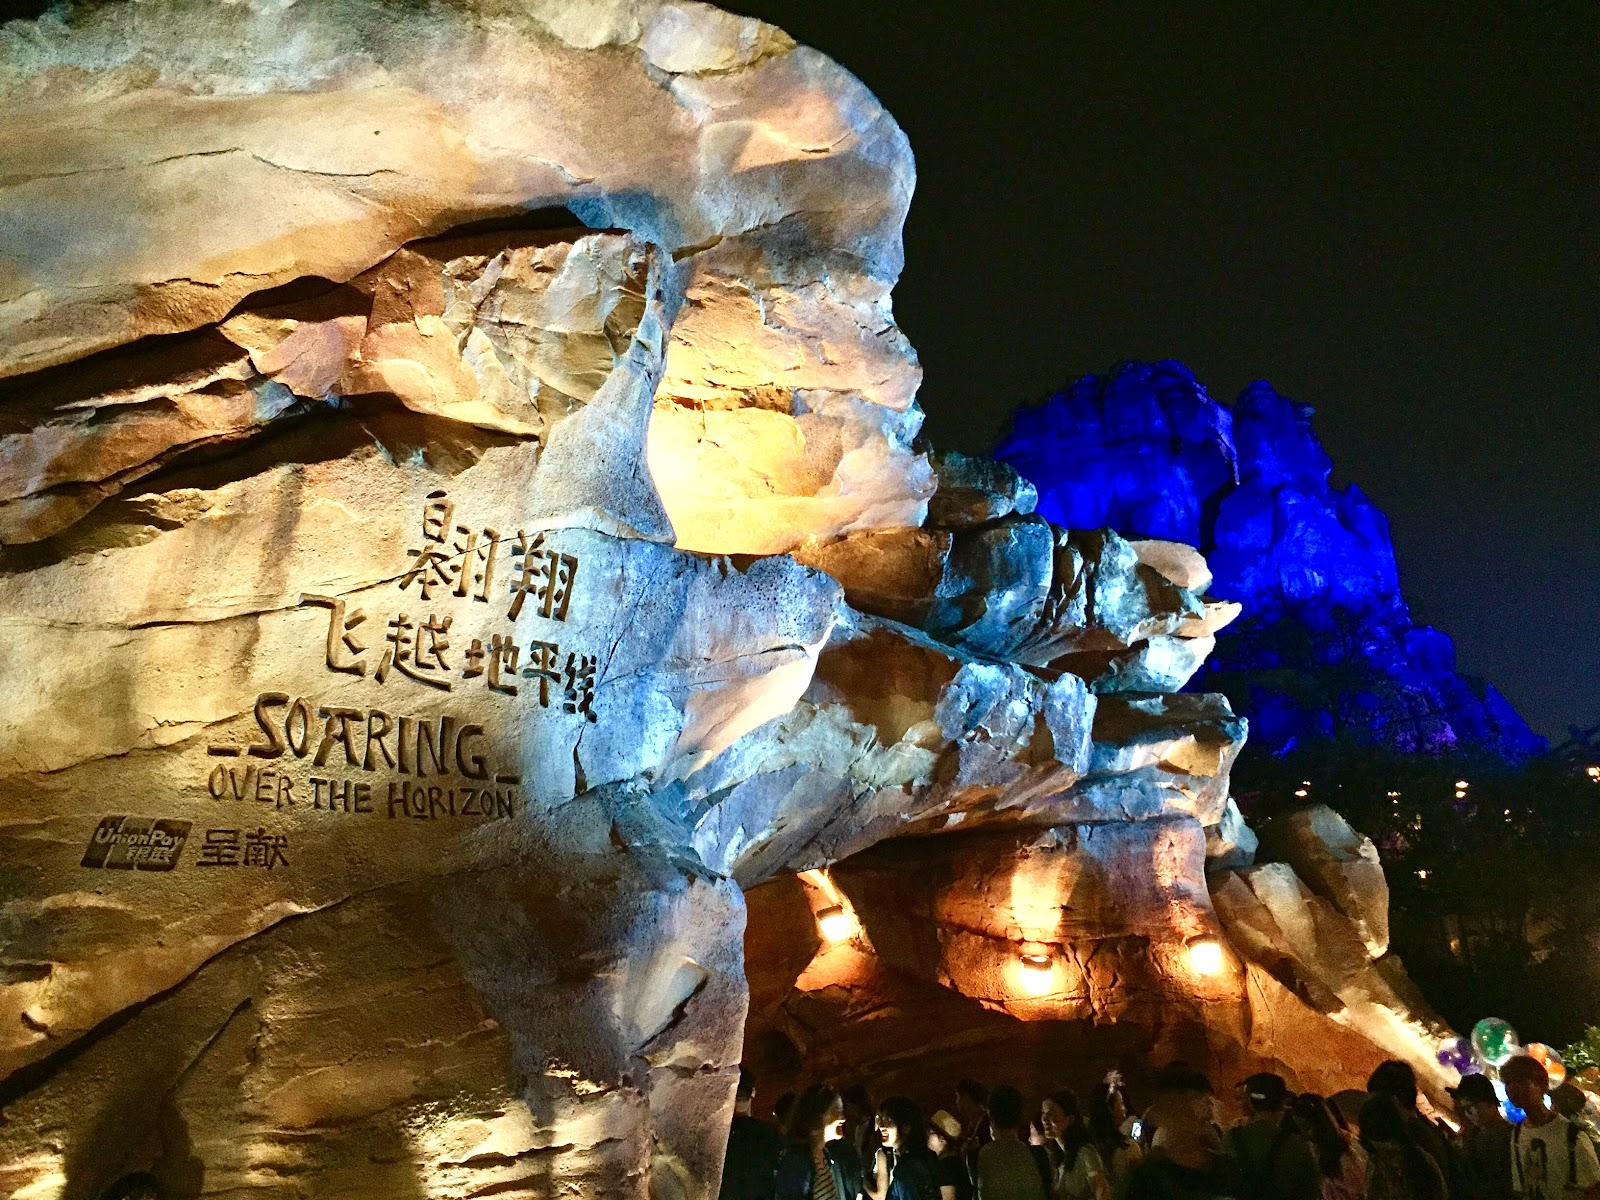 Shanghai Disneyland Soaring Over the Horizon Roaring Mountain